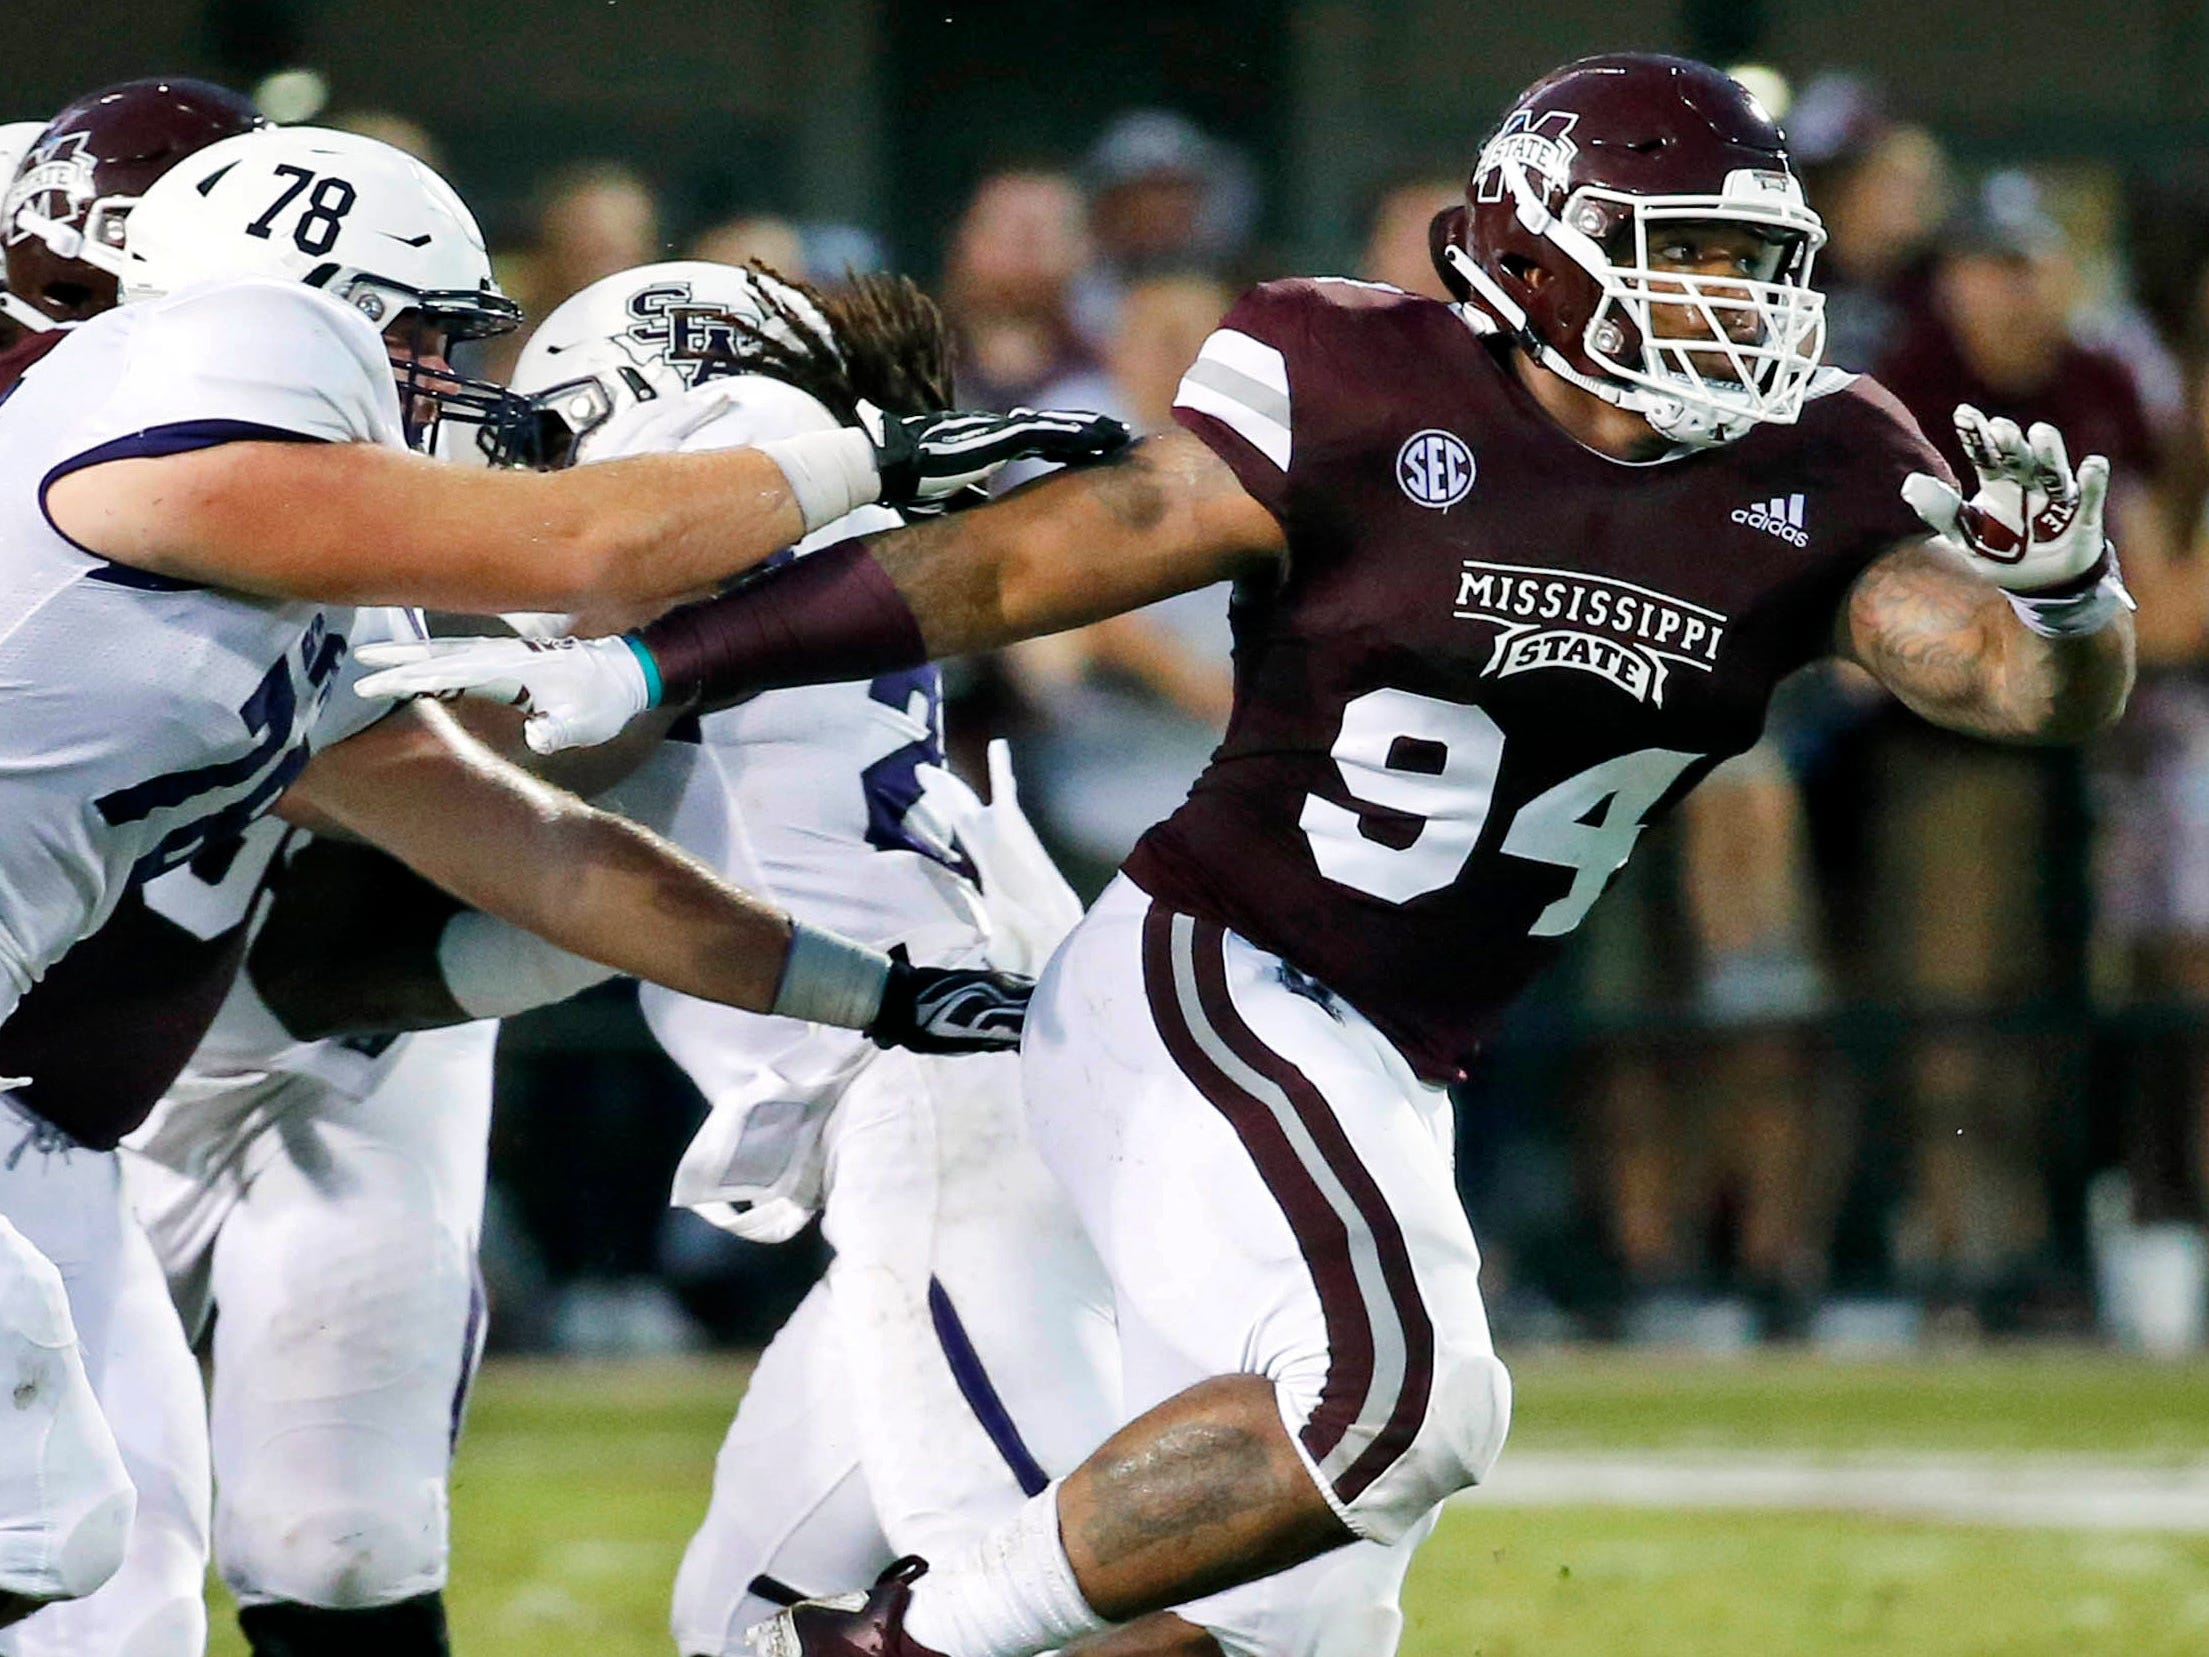 14. Jeffery Simmons, DT, Mississippi State: The Lions are in good shape at defensive tackle, but it never hurts to have more talented depth up front, plus A'Shawn Robinson only has a year left on his rookie deal. Simmons' athleticism is expected to turn heads at the combine, which would only enhance a body of work that included 15.5 tackles behind the line this season.